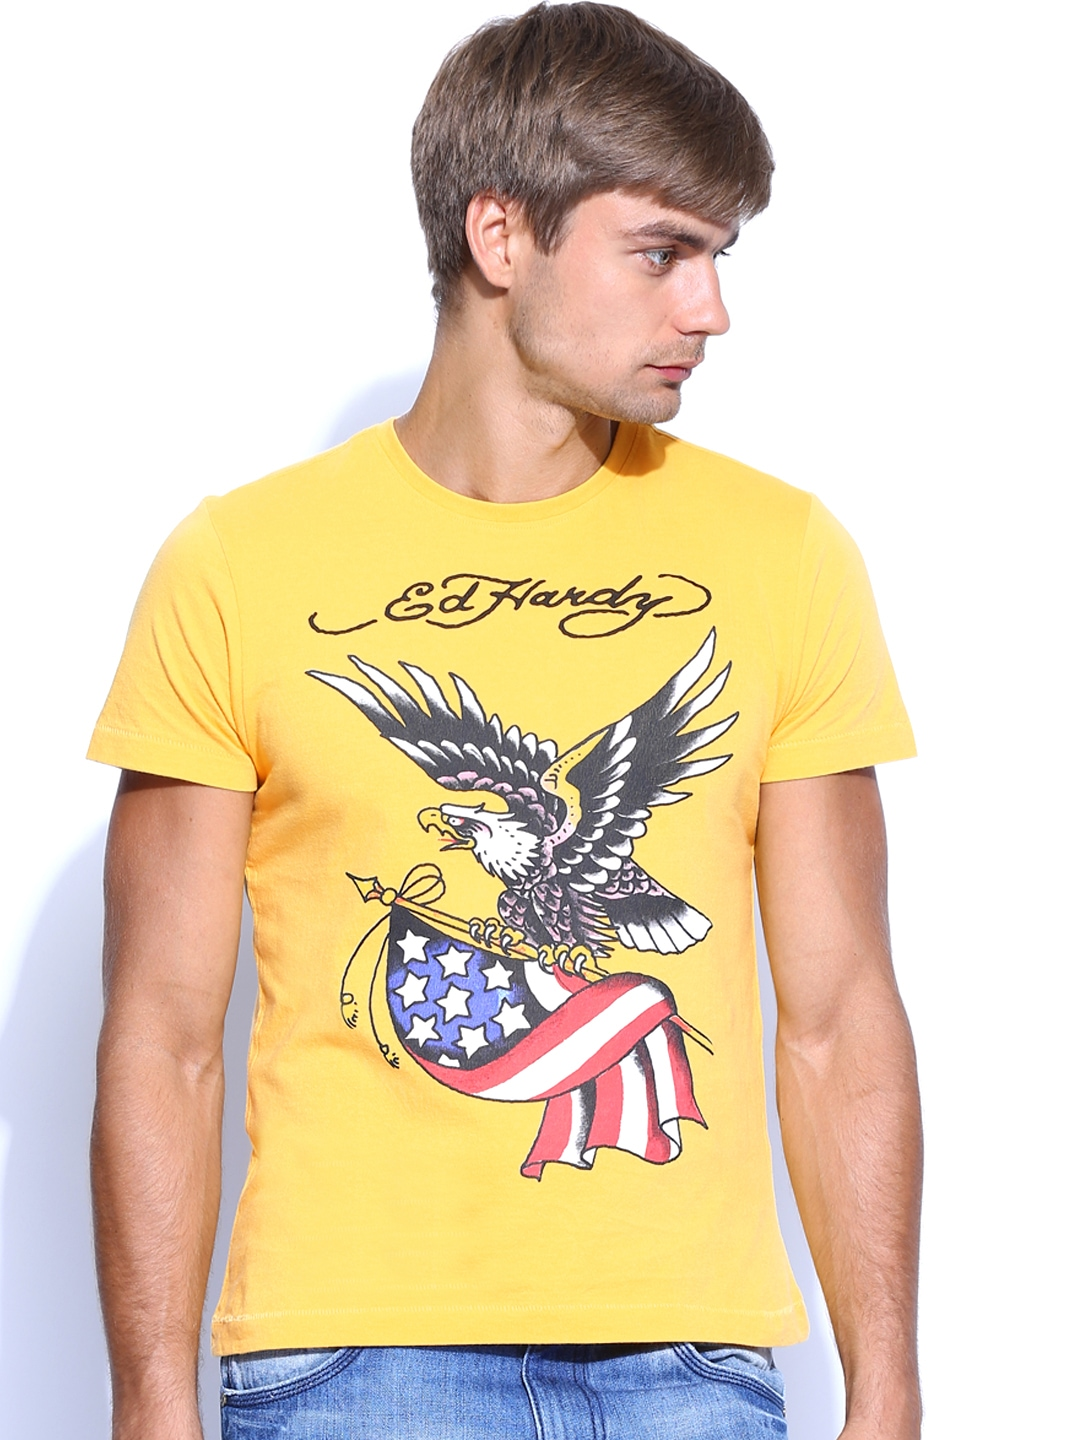 Ed hardy t shirts online shopping